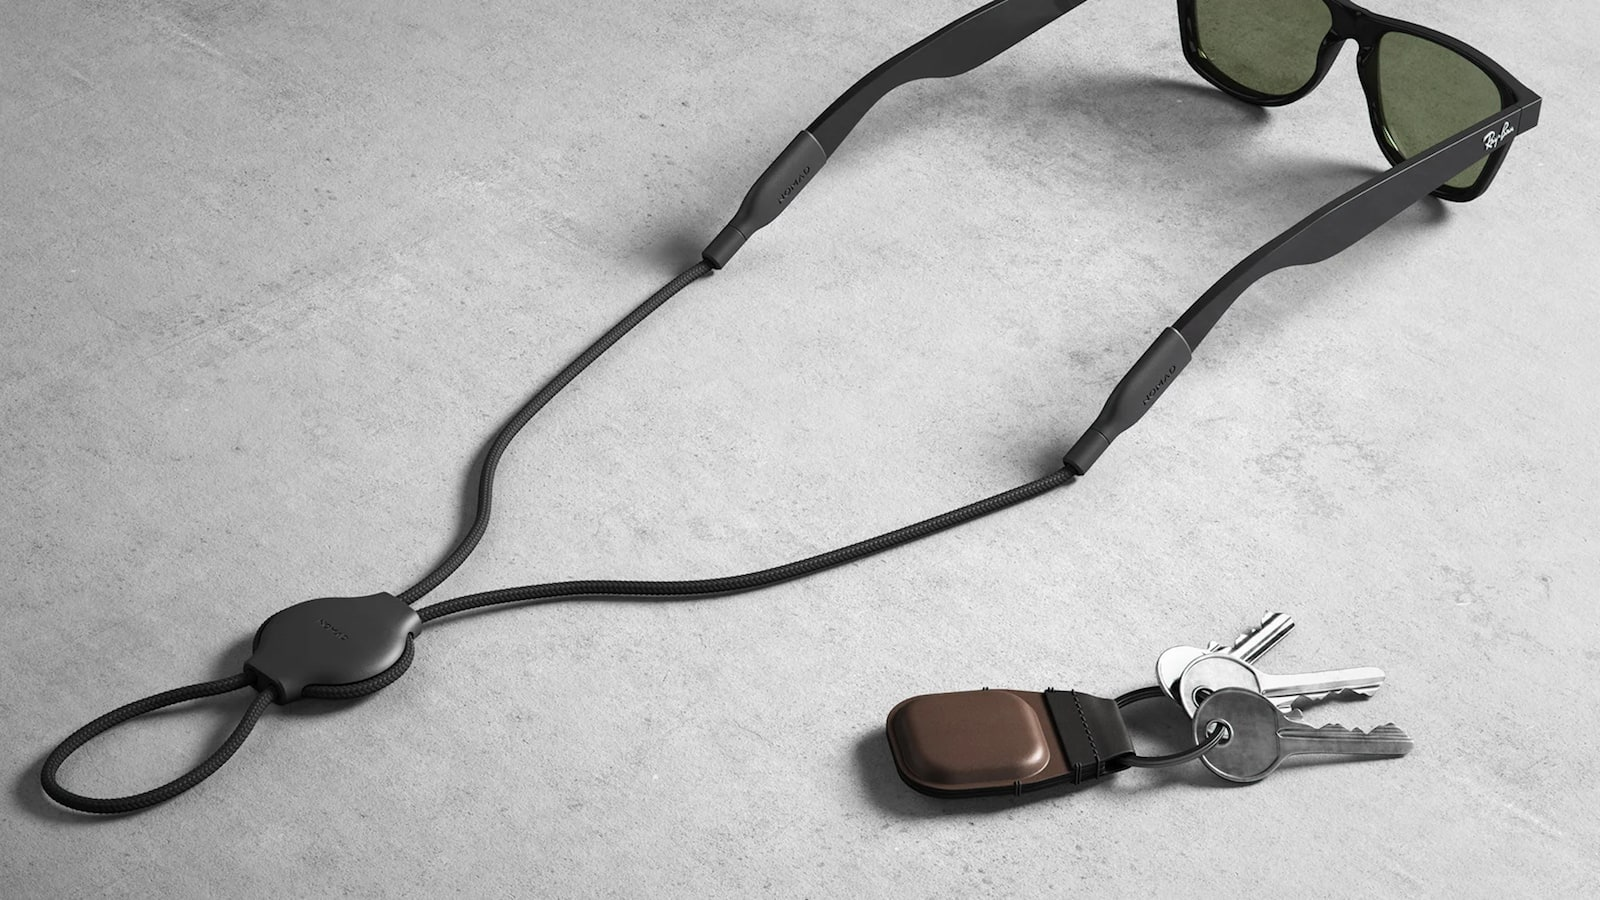 Nomad-AirTag-Keychain-and-Glasses-Strap-01.jpg